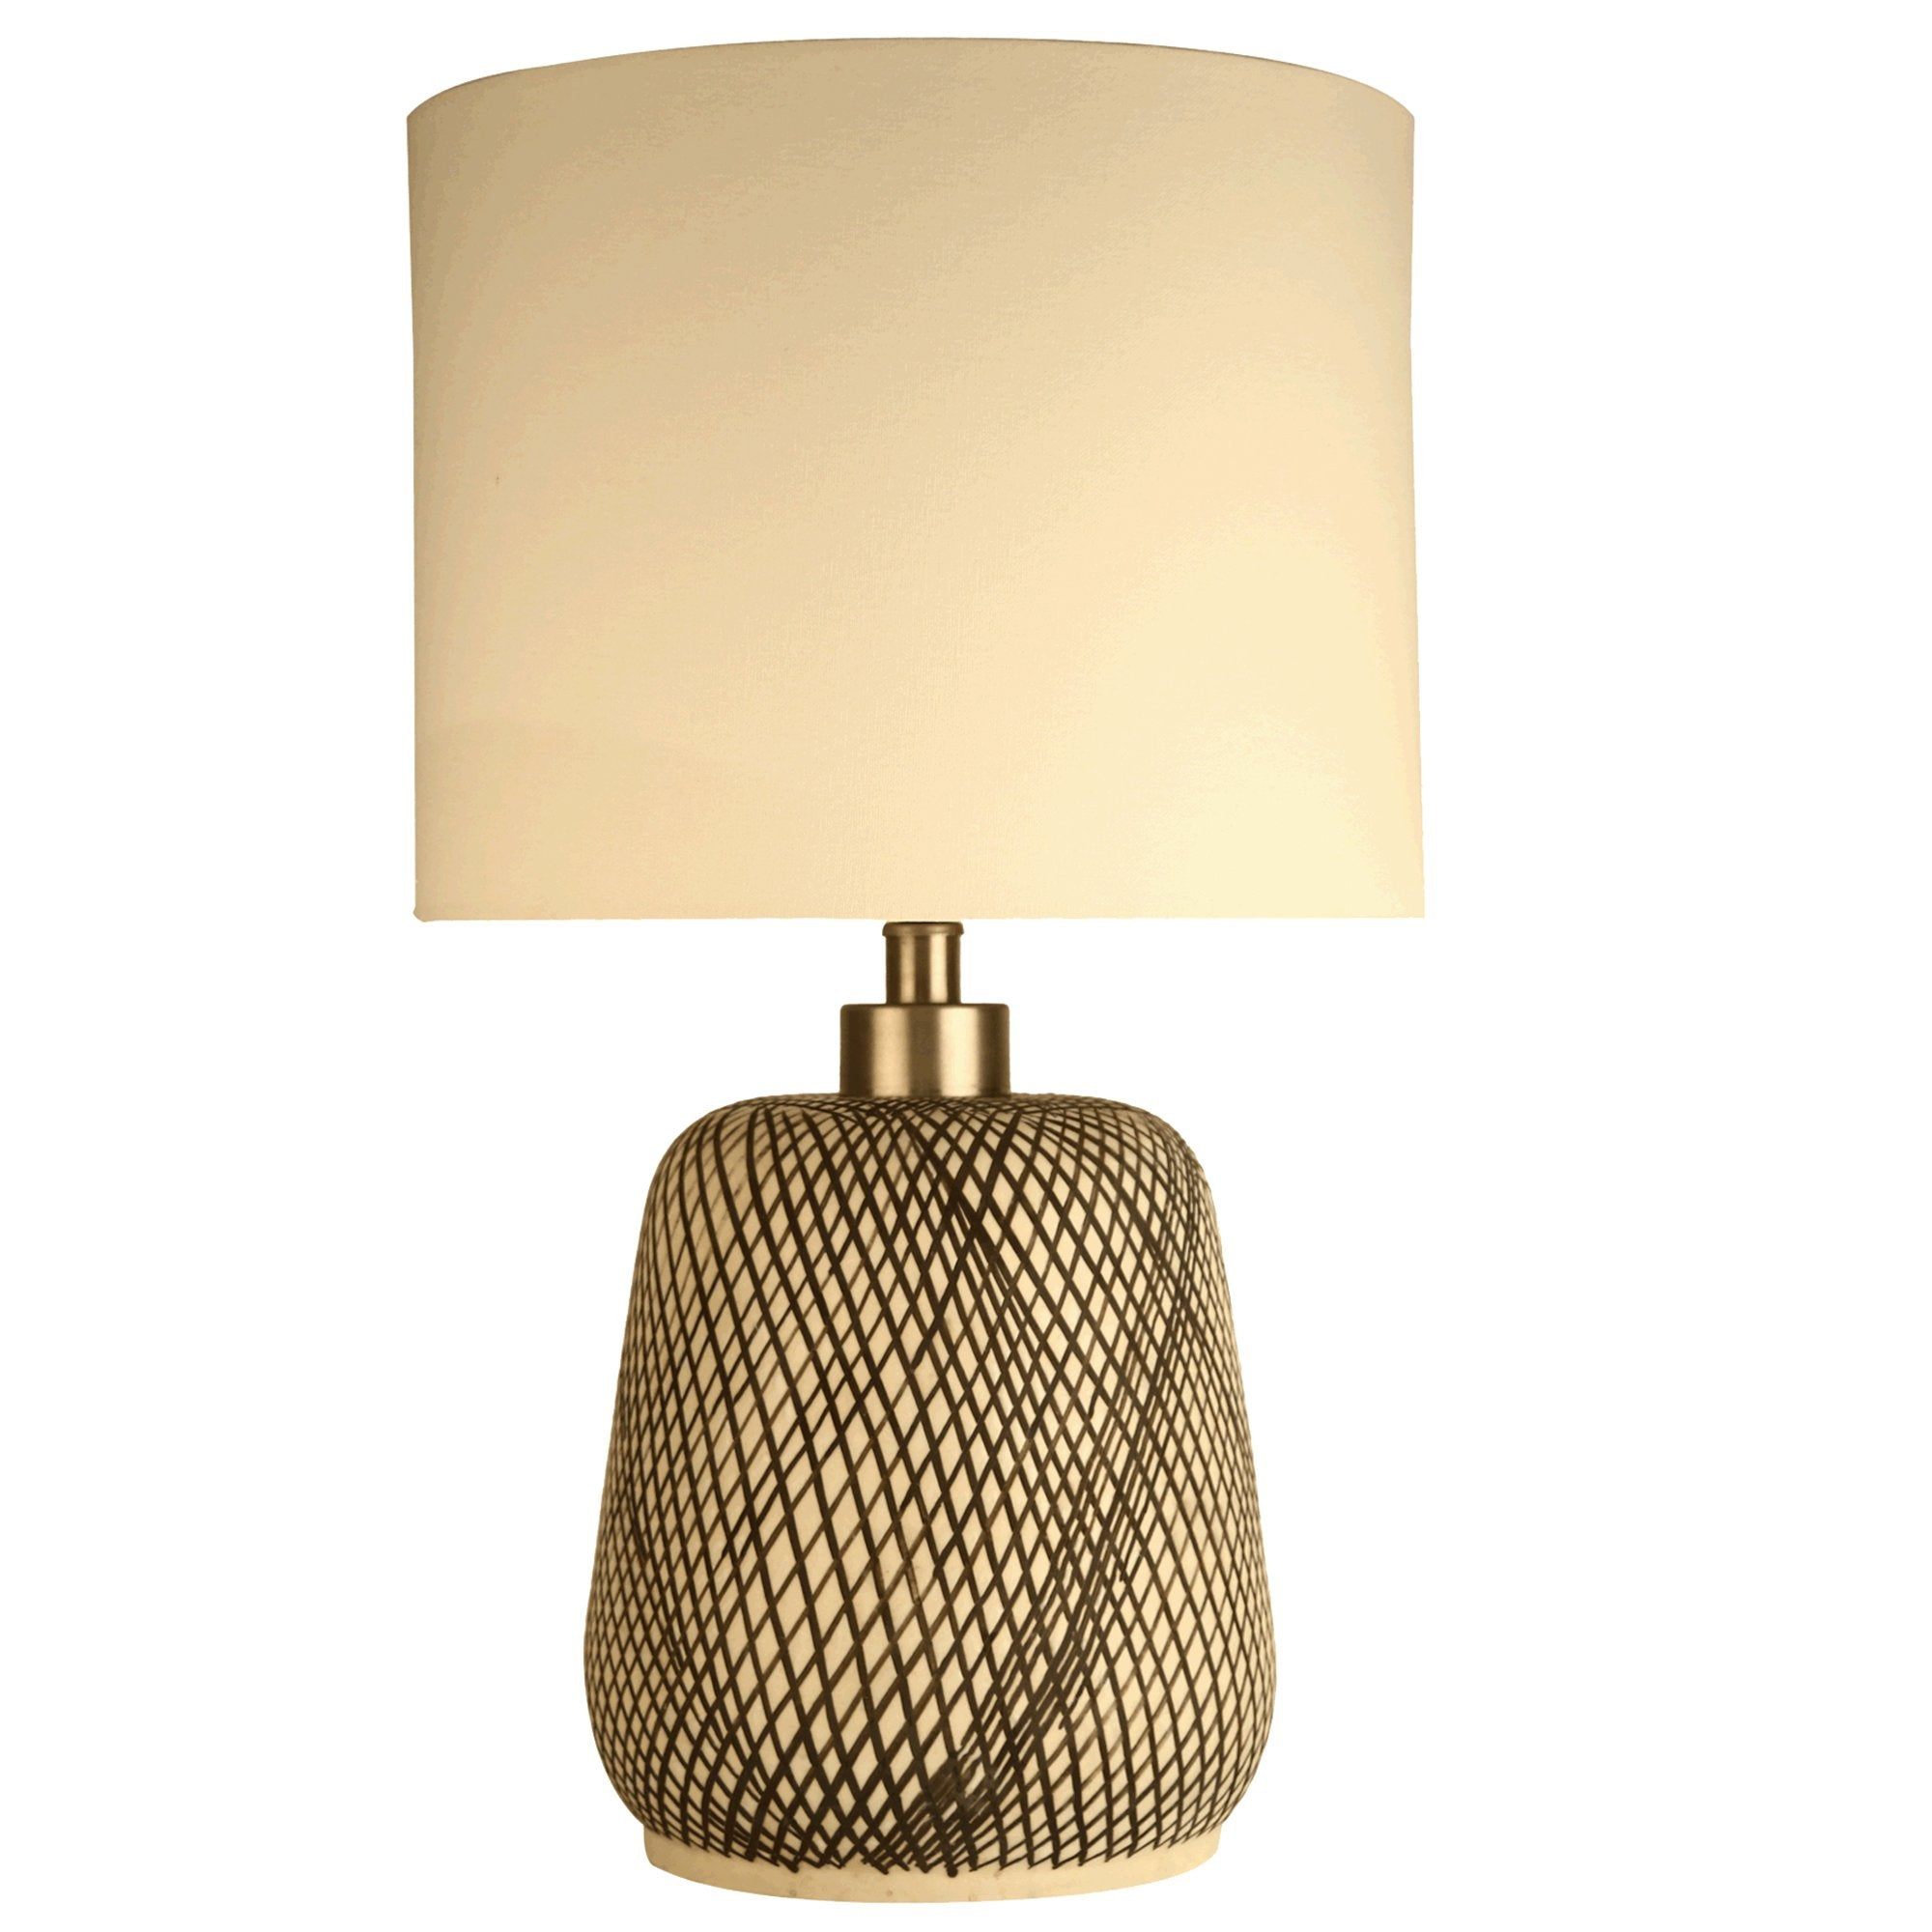 Picture of Skye Swirl Lamp